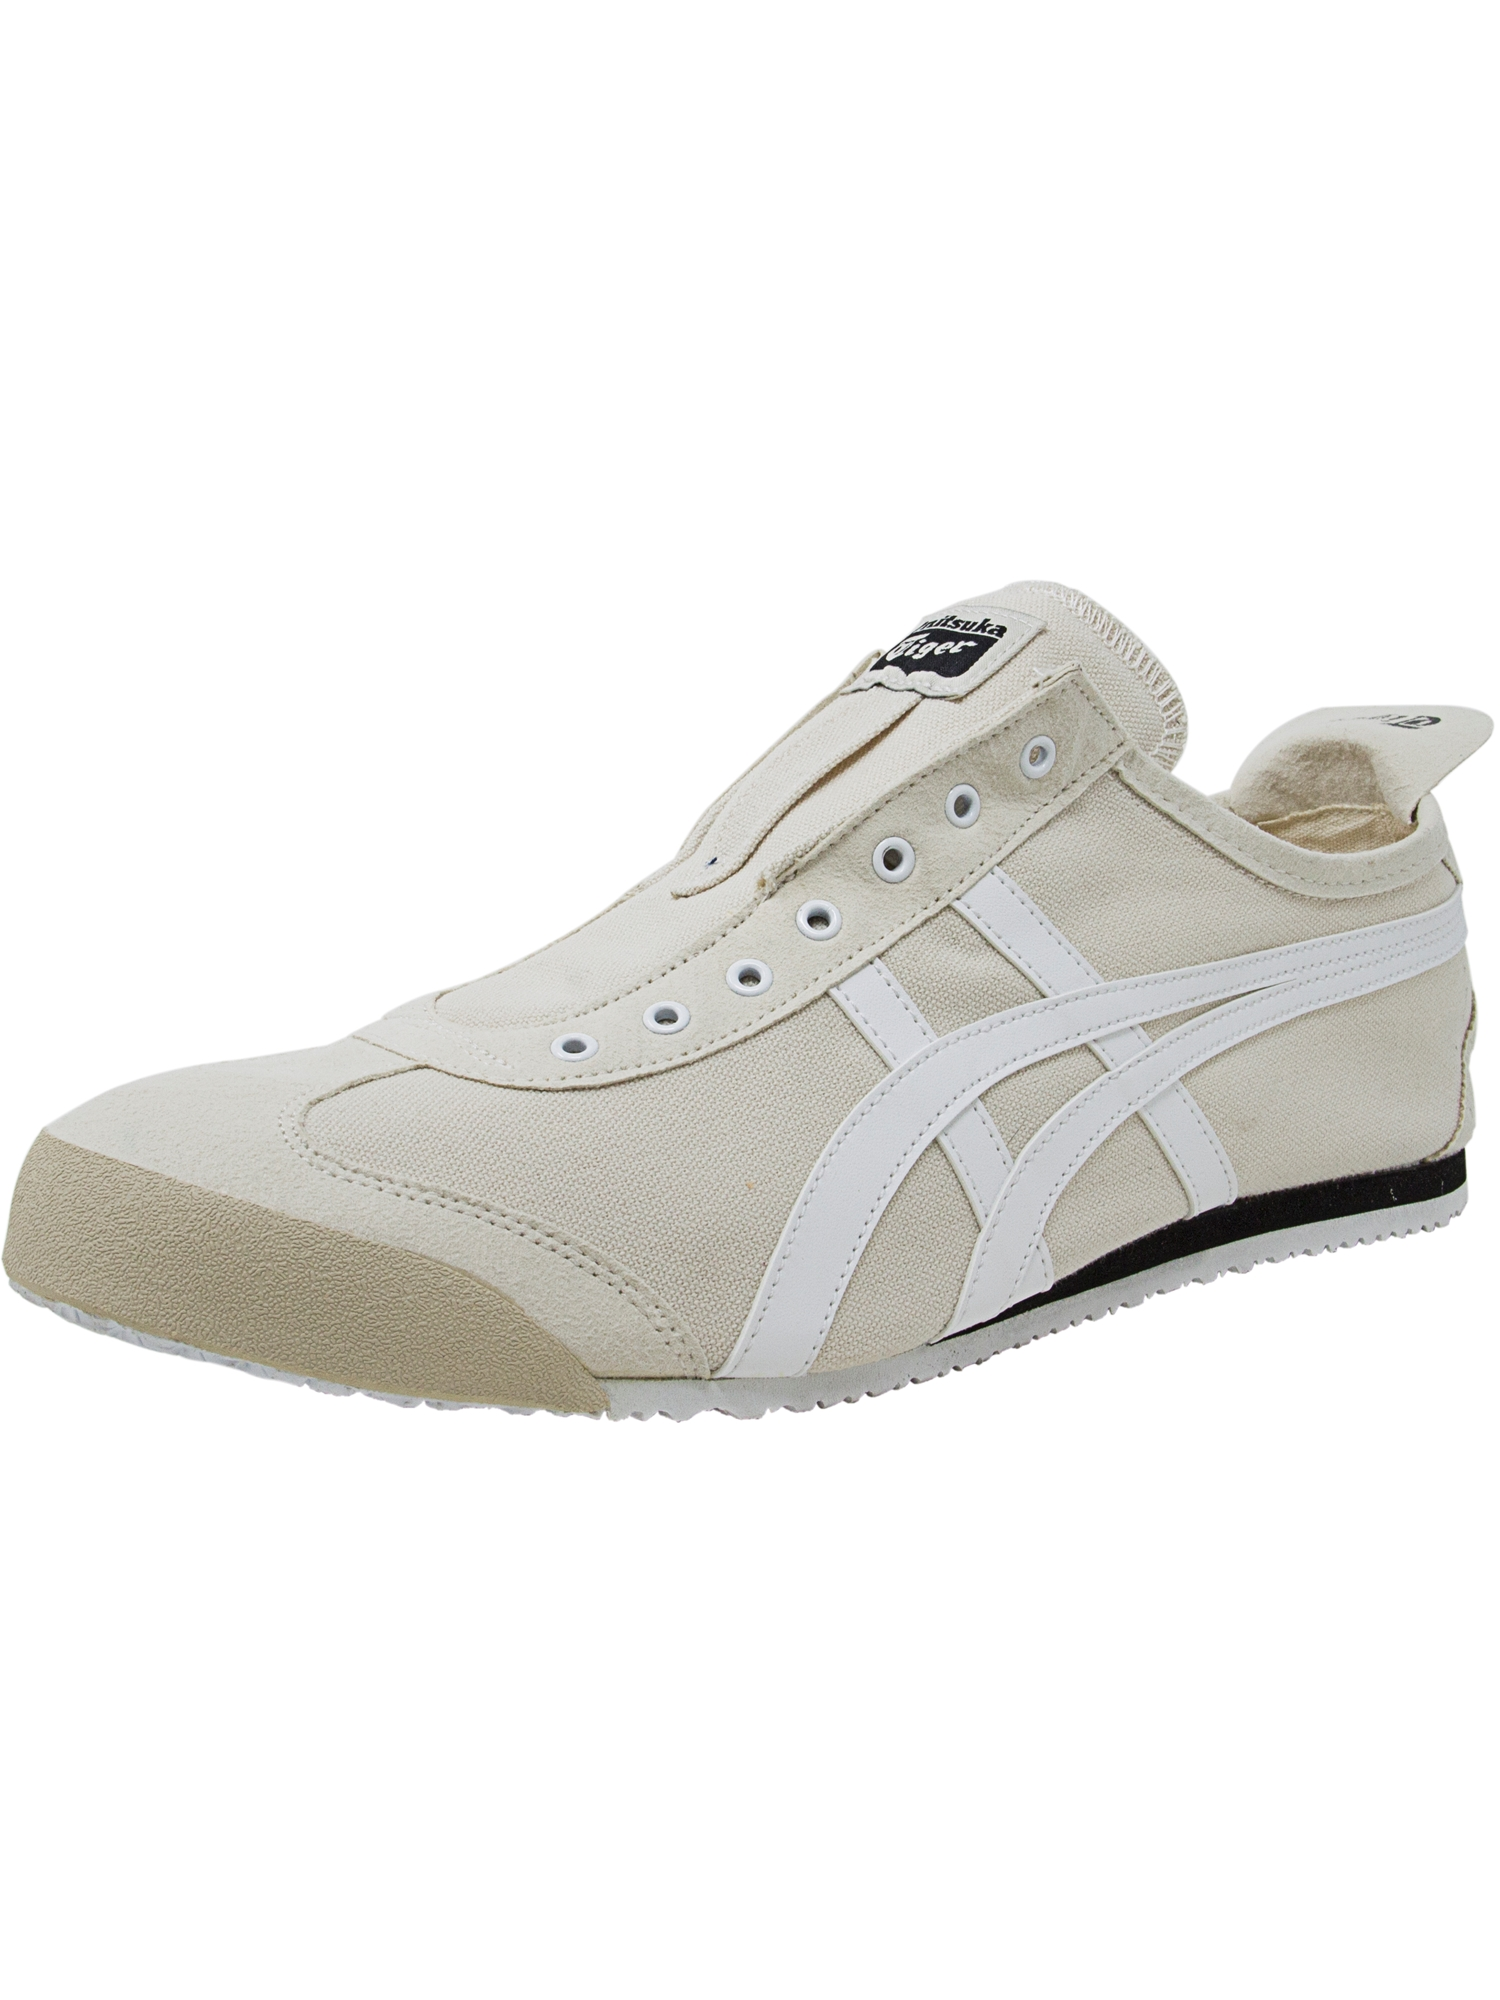 Onitsuka Tiger Men's Mexico 66 Slip-On Birch / White Ankle-High Shoes - 14M